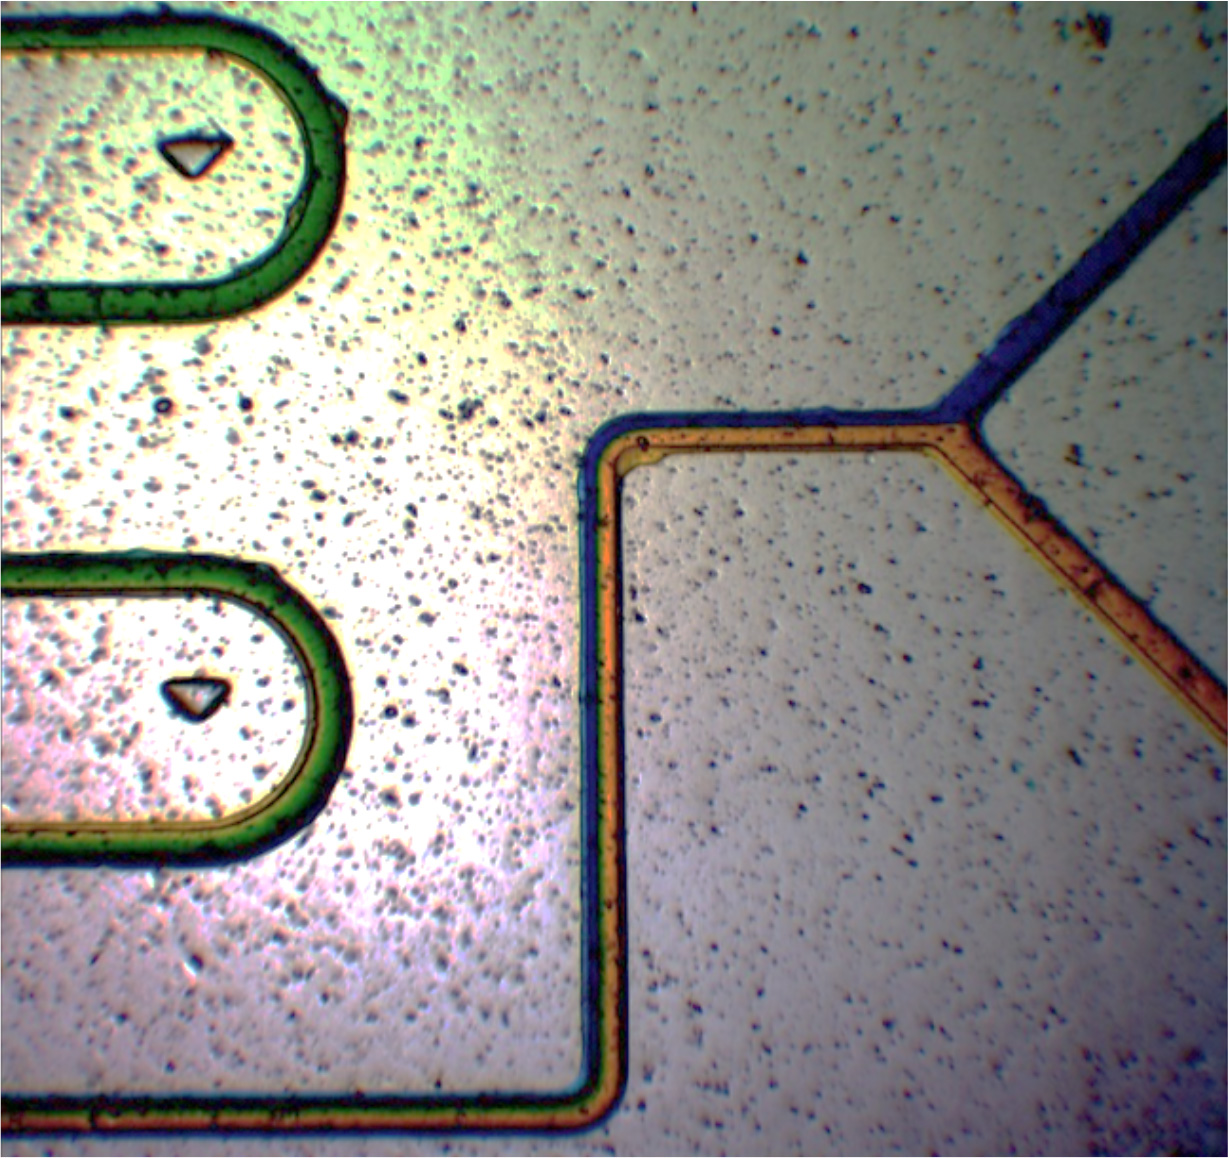 Polymer microfluidic chips stand to benefit from new manufacturing processes.